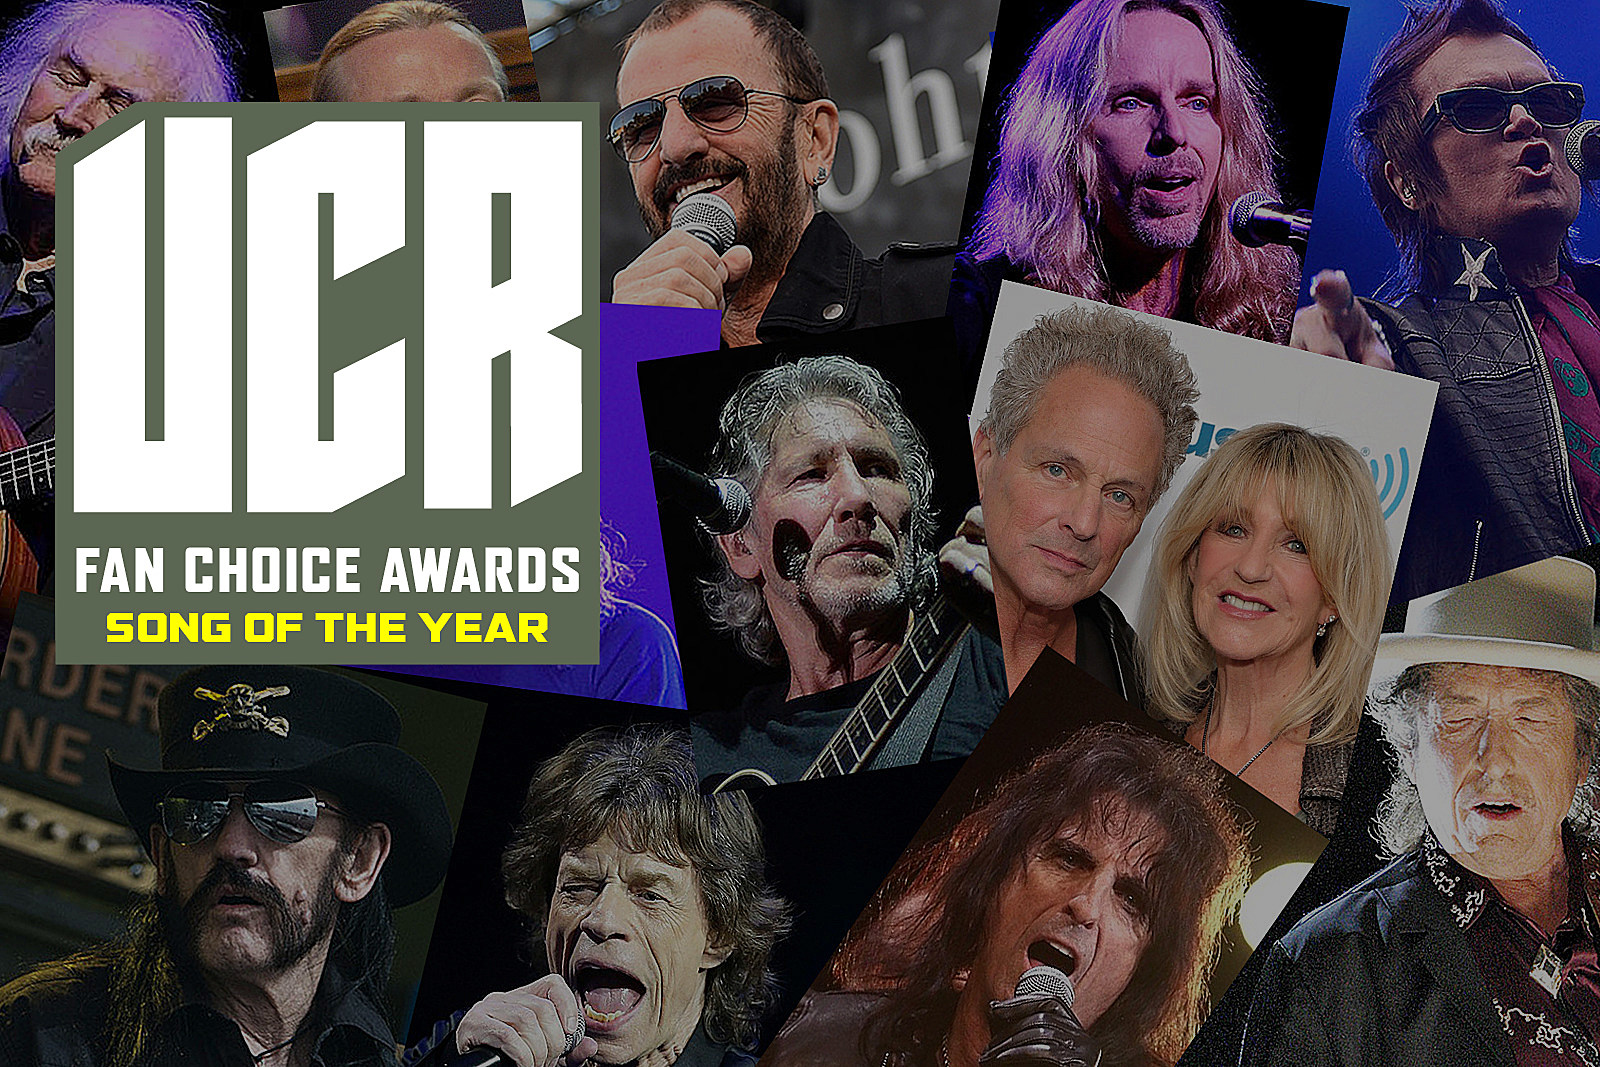 Song2017 UCR Fan Choice Awards Song of the Year